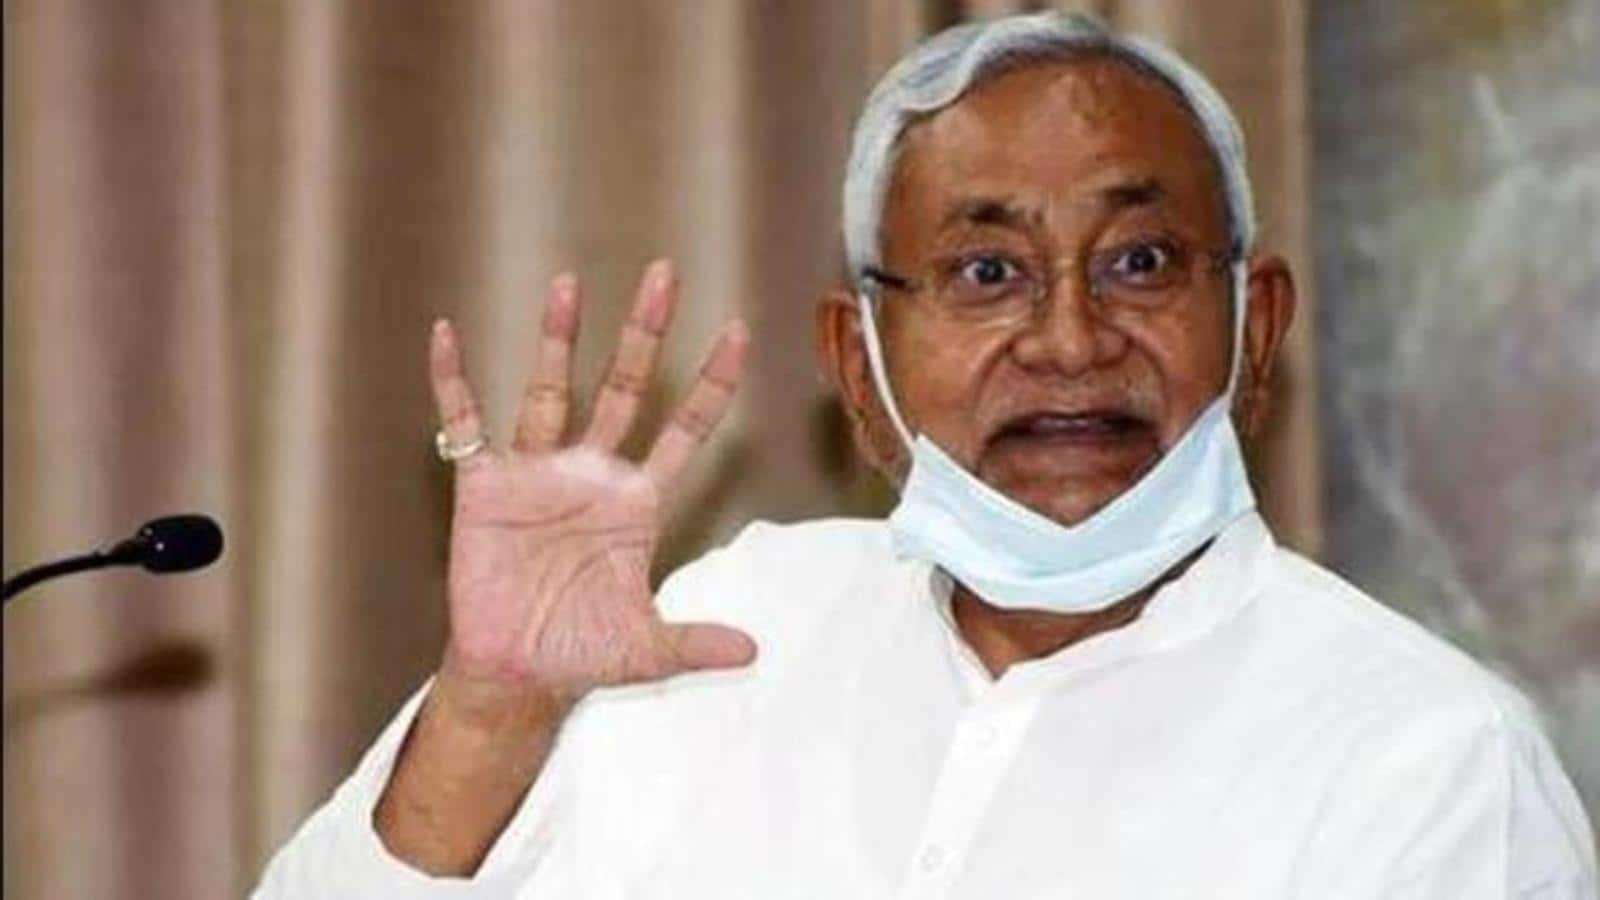 Law alone won't help, says Nitish Kumar after UP floats population control  bill - Hindustan Times